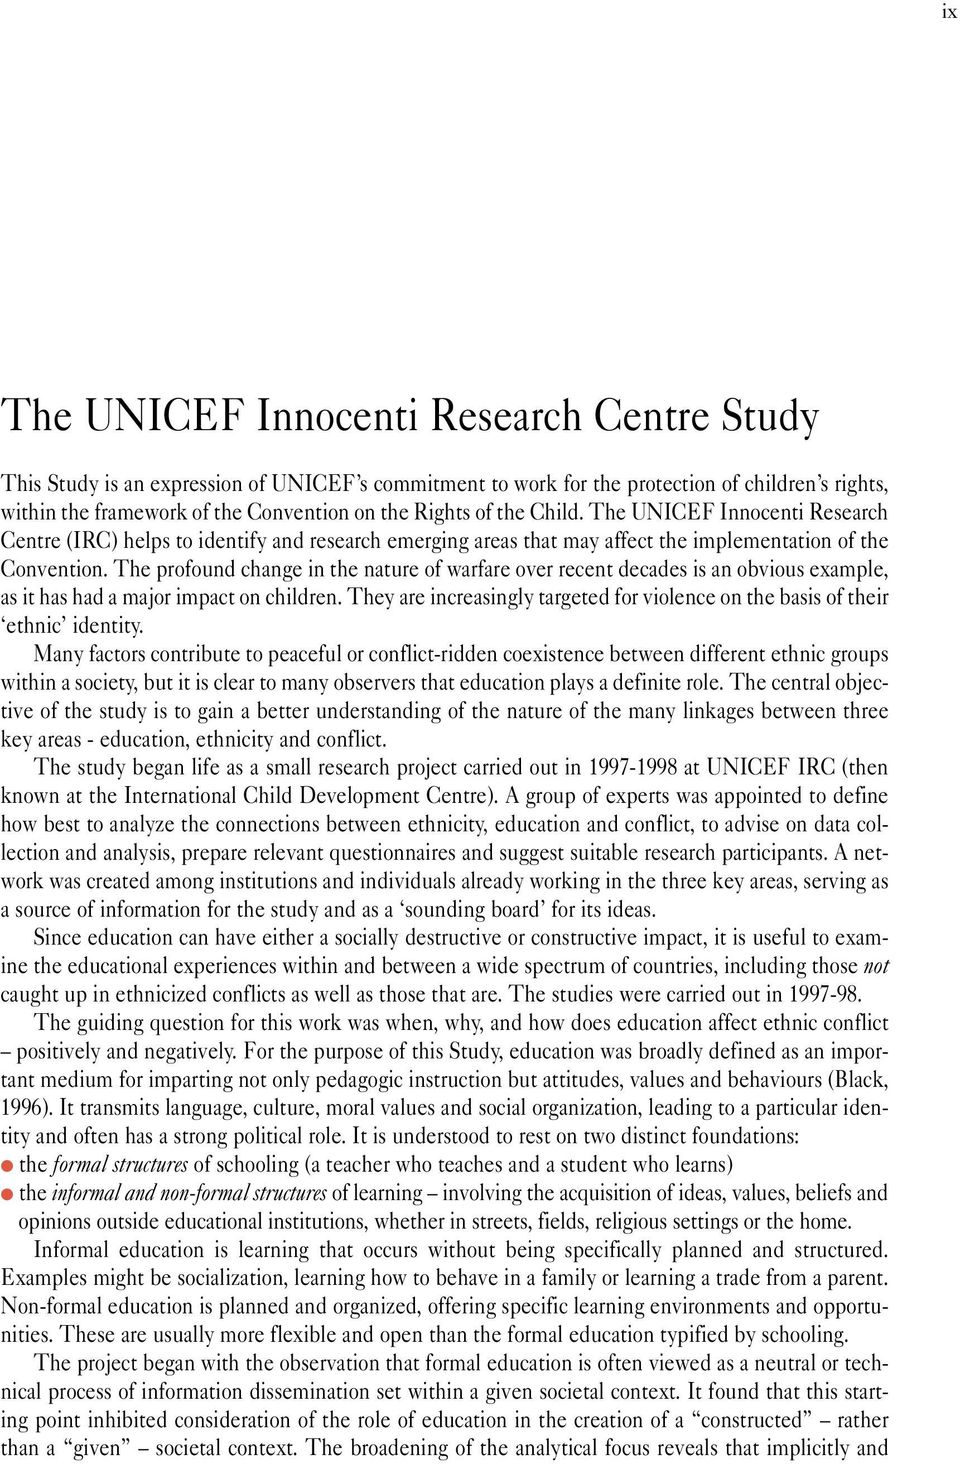 The UNICEF Innocenti Research Centre (IRC) helps to identify and research emerging areas that may affect the implementation of the Convention.